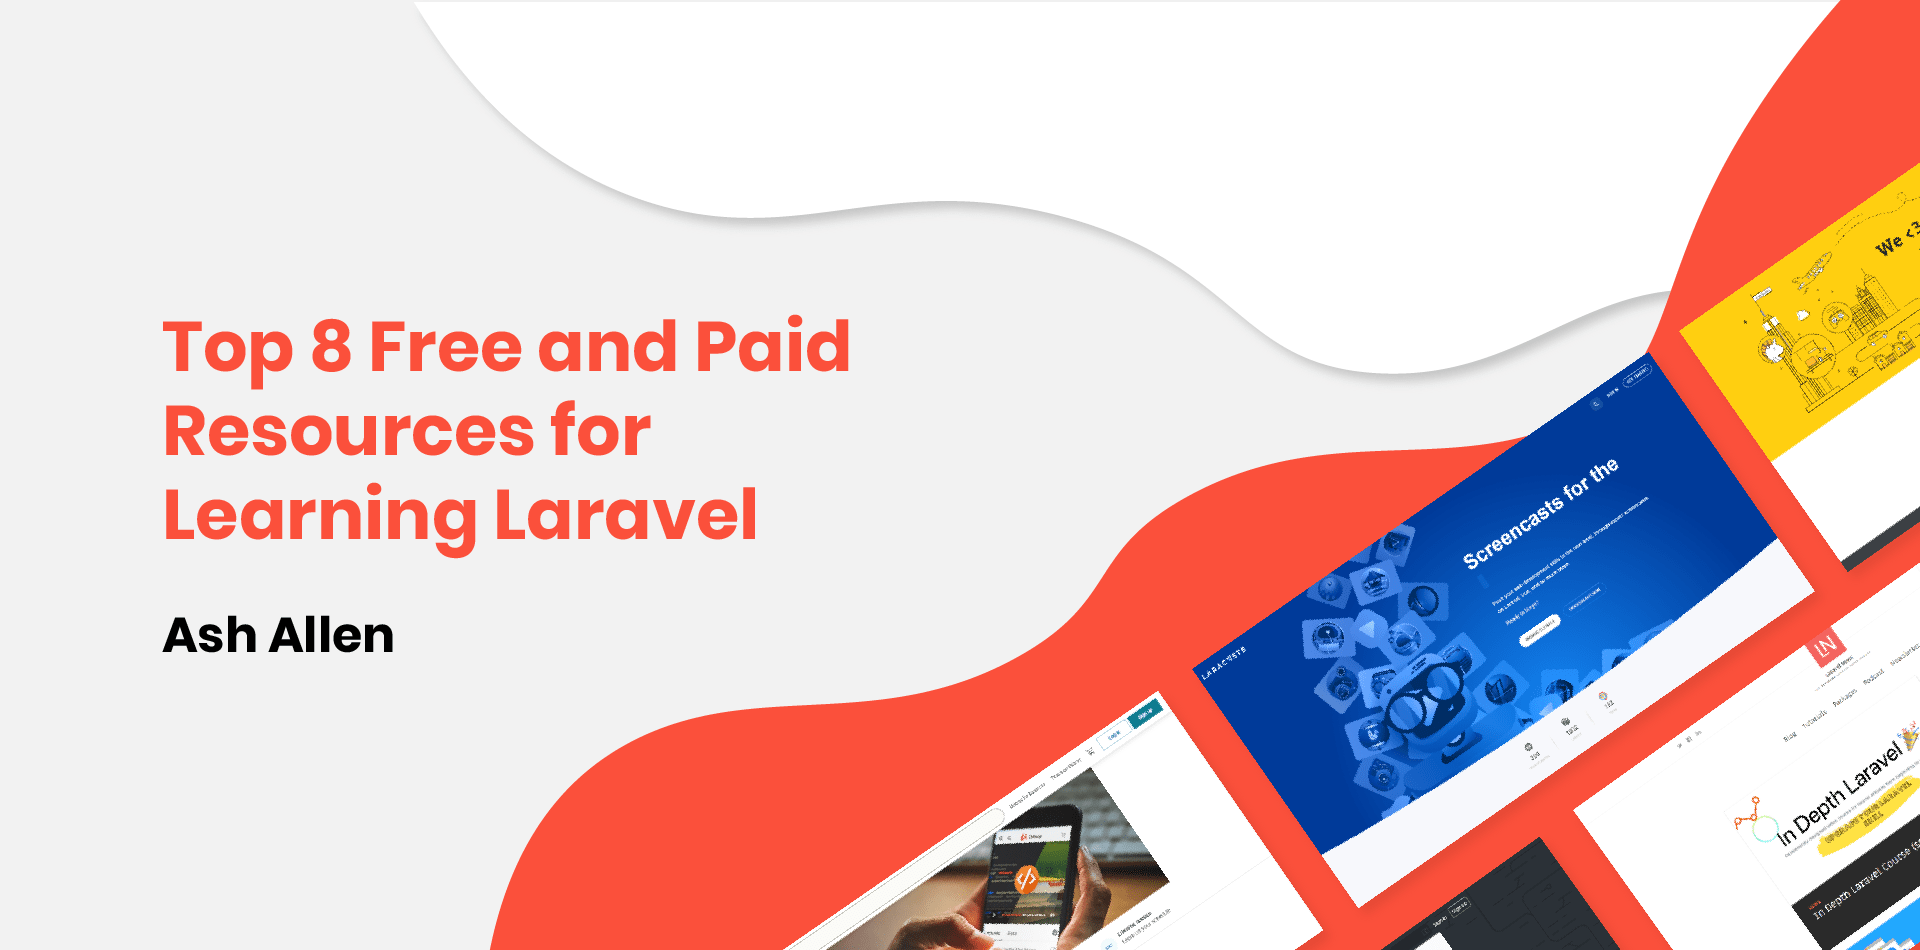 Learn about 8 free and paid resources that you can use for learning how to use Laravel. These resources are for beginners and experienced developers.